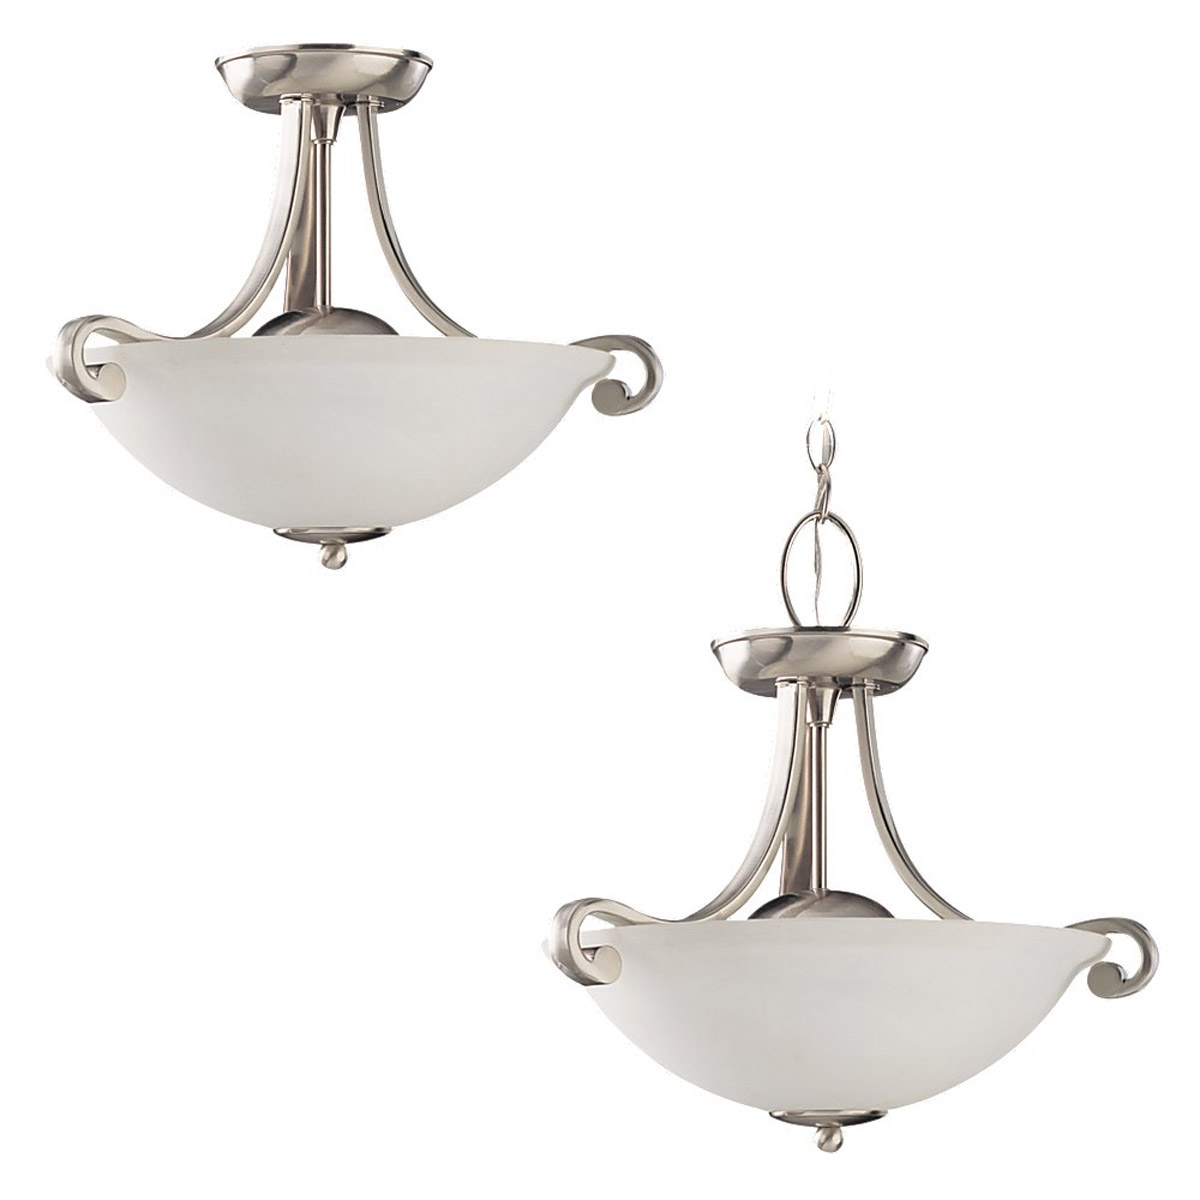 Sea Gull Lighting Serenity 3 Light Semi-Flush Mount in Brushed Nickel 59159BLE-962